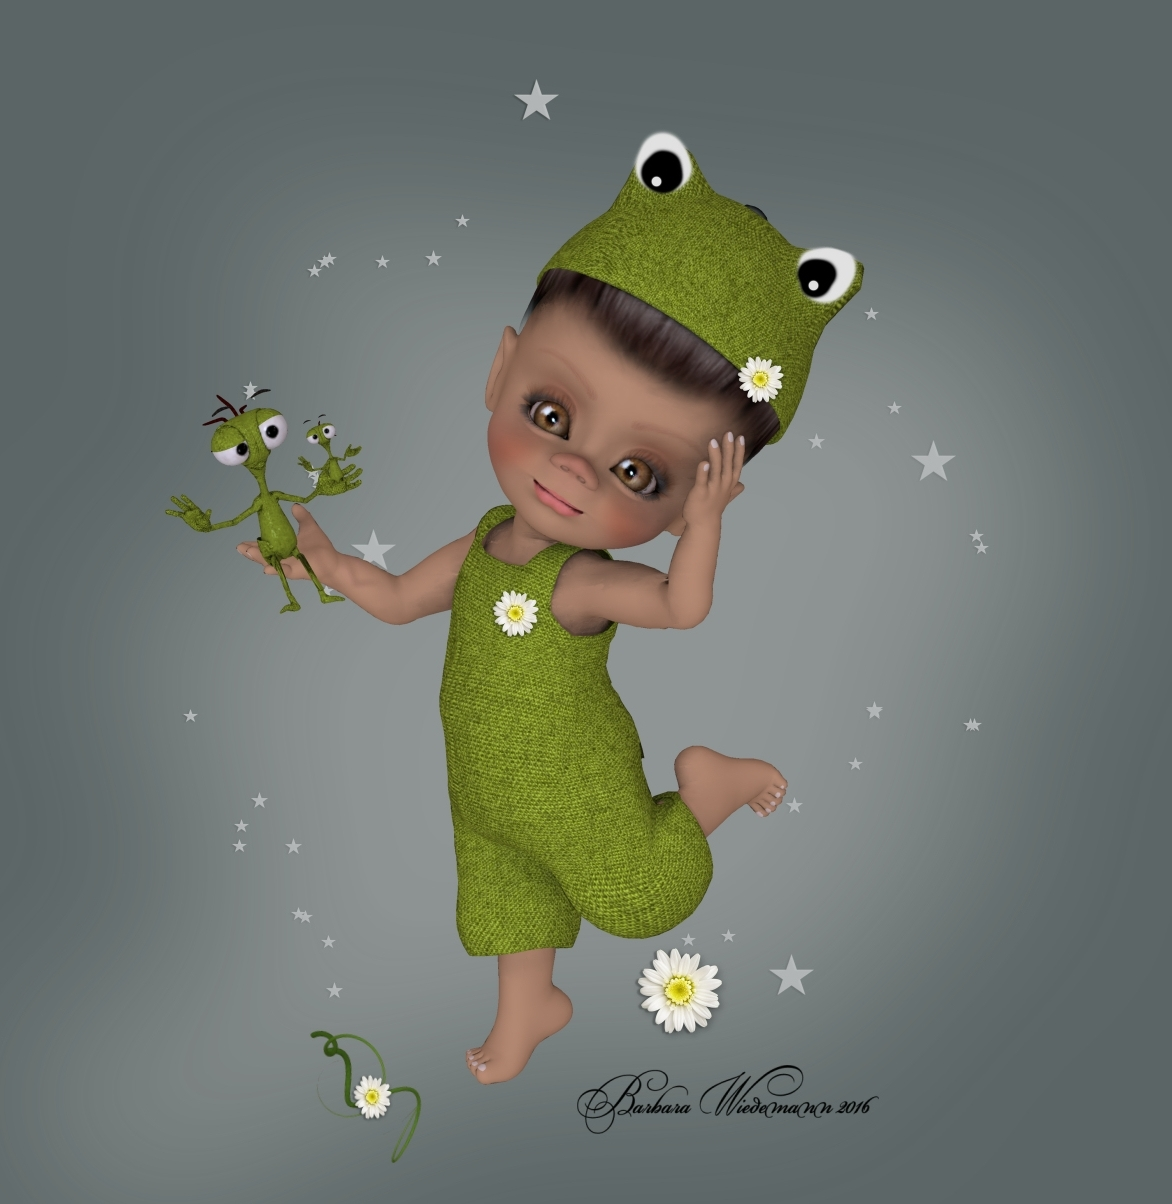 Kit Froggie and Torf by Barbara1337